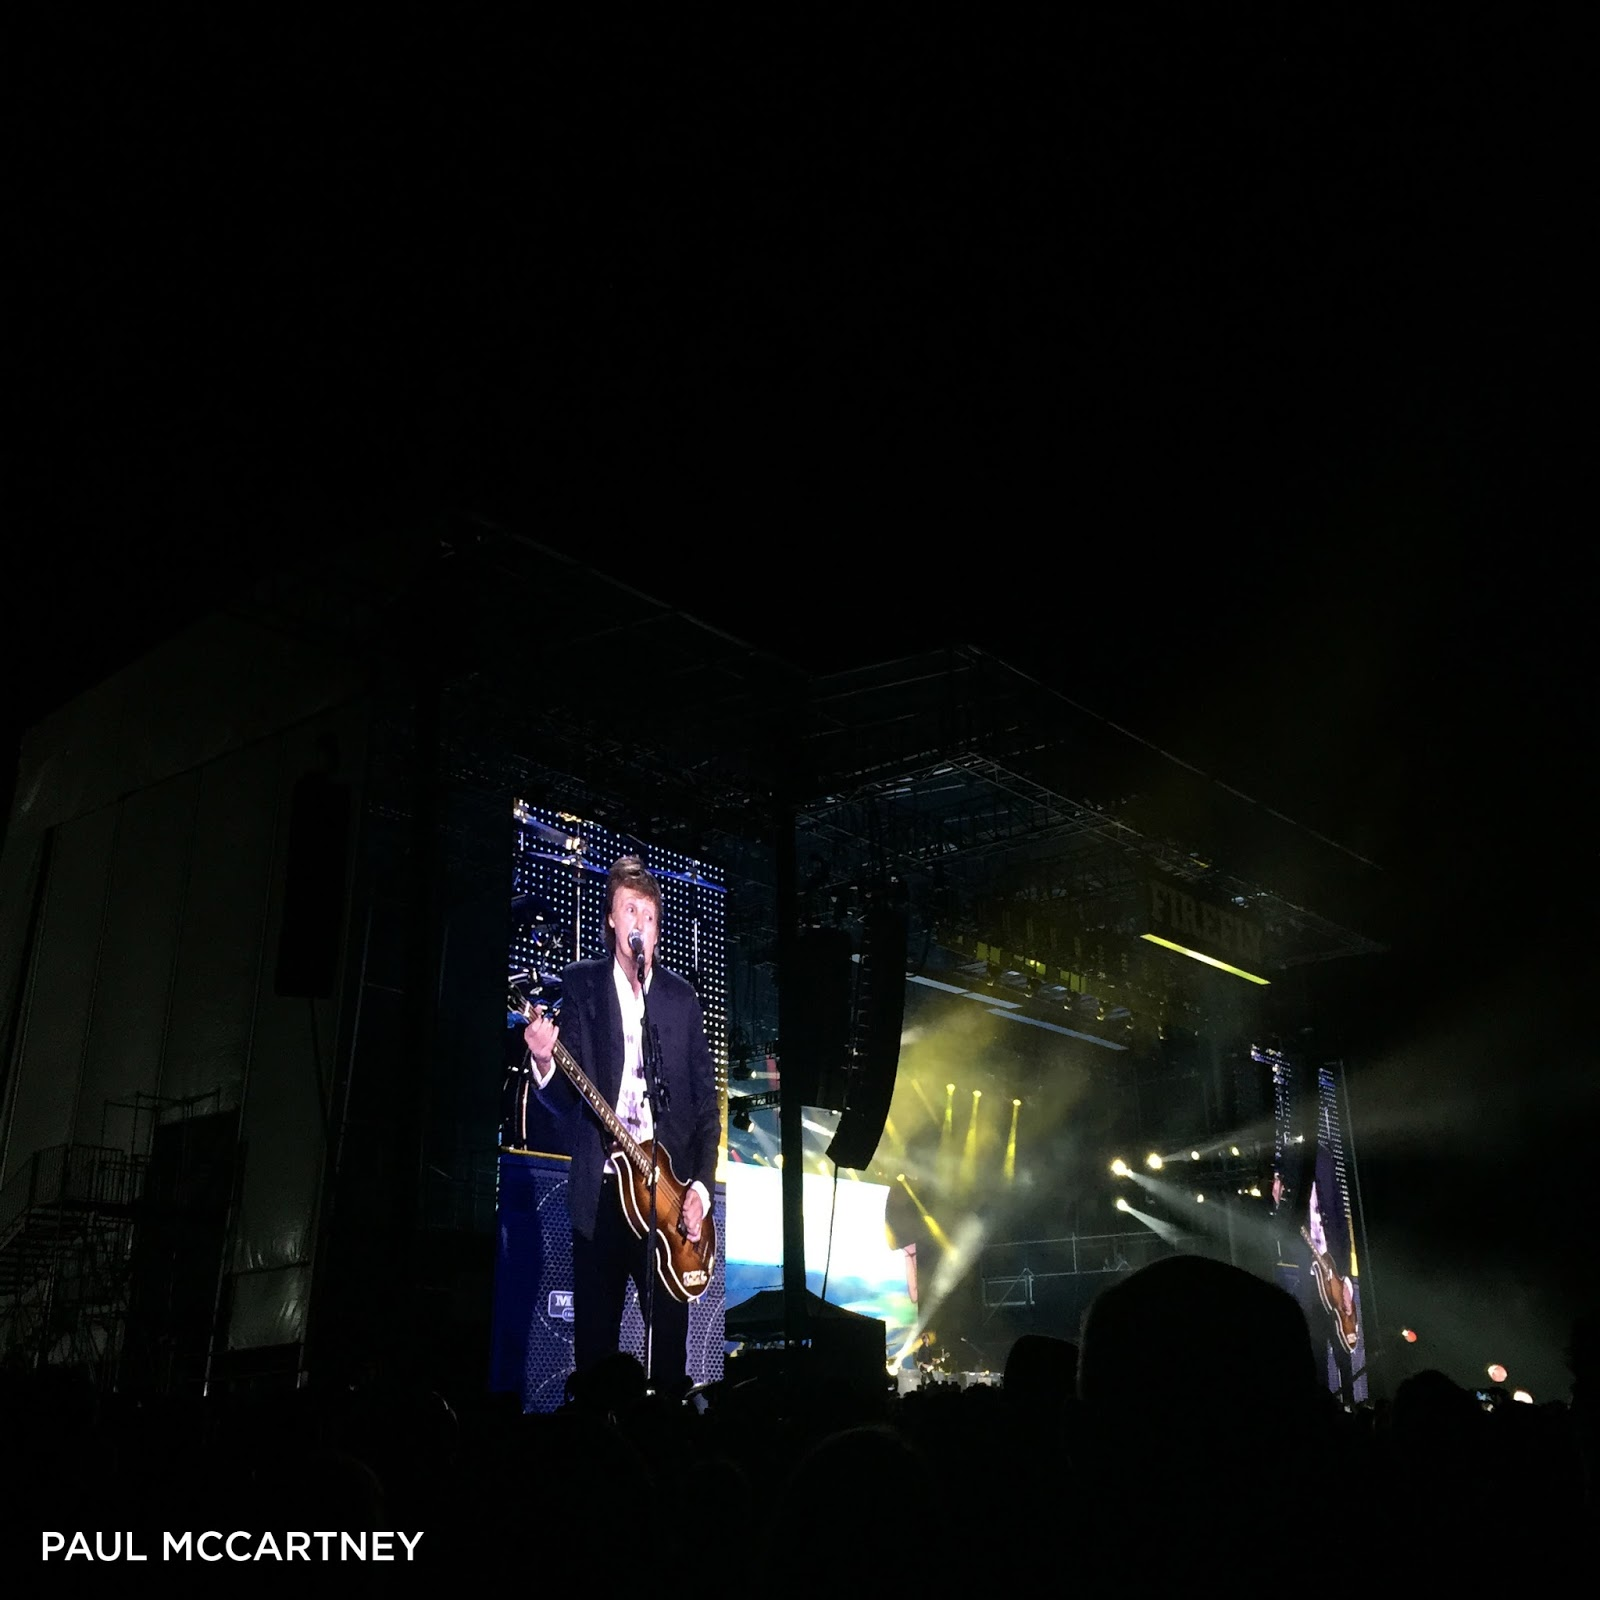 firefly-music-festival-paul-mccartney.JPG